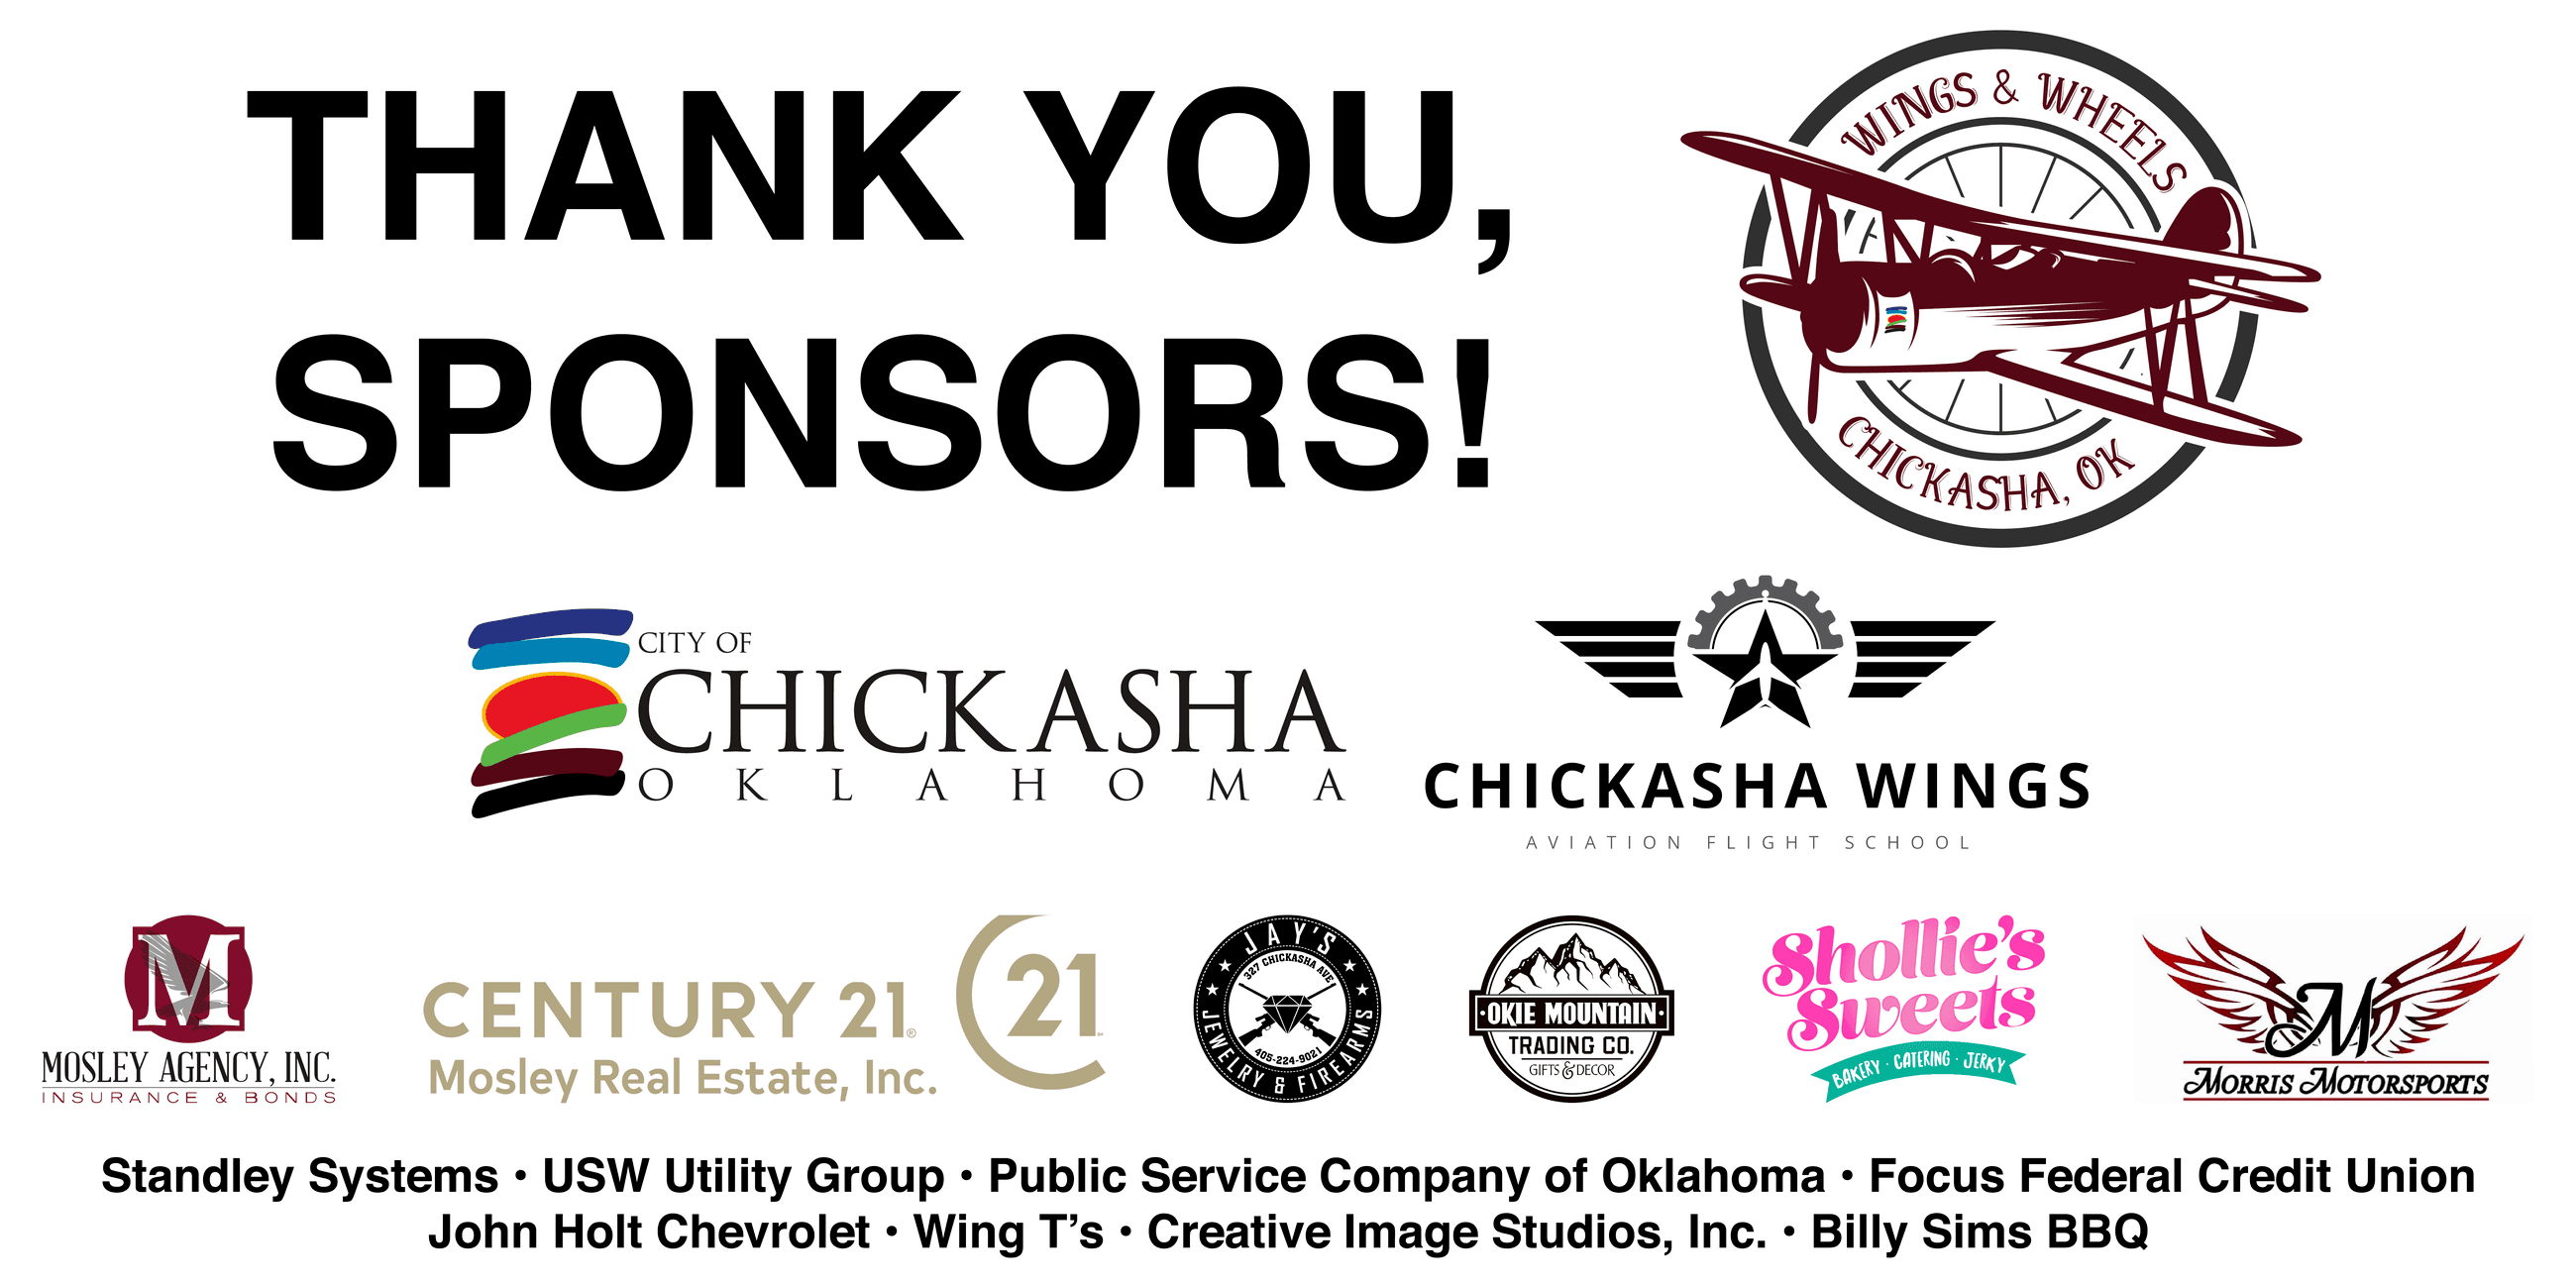 Wings & Wheels 2019 Sponsors